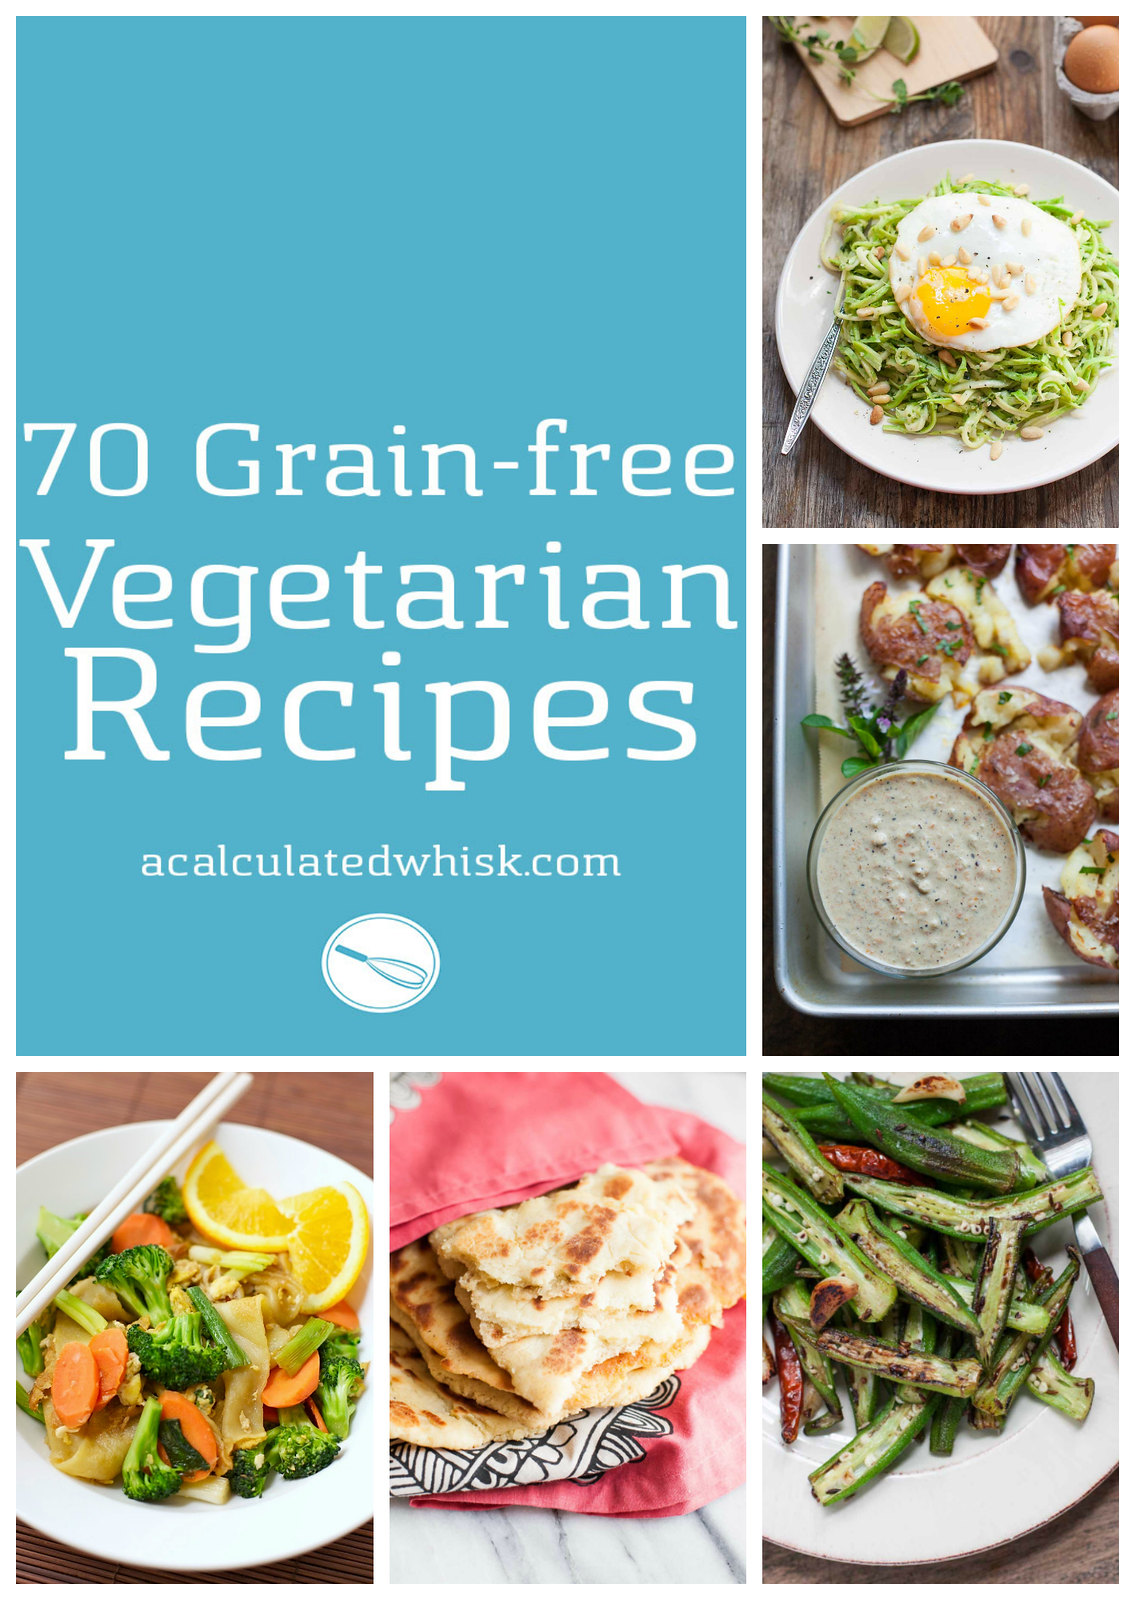 70 Grain-free Vegetarian Recipes (including dozens that are paleo, vegan, and Whole30 compliant!)